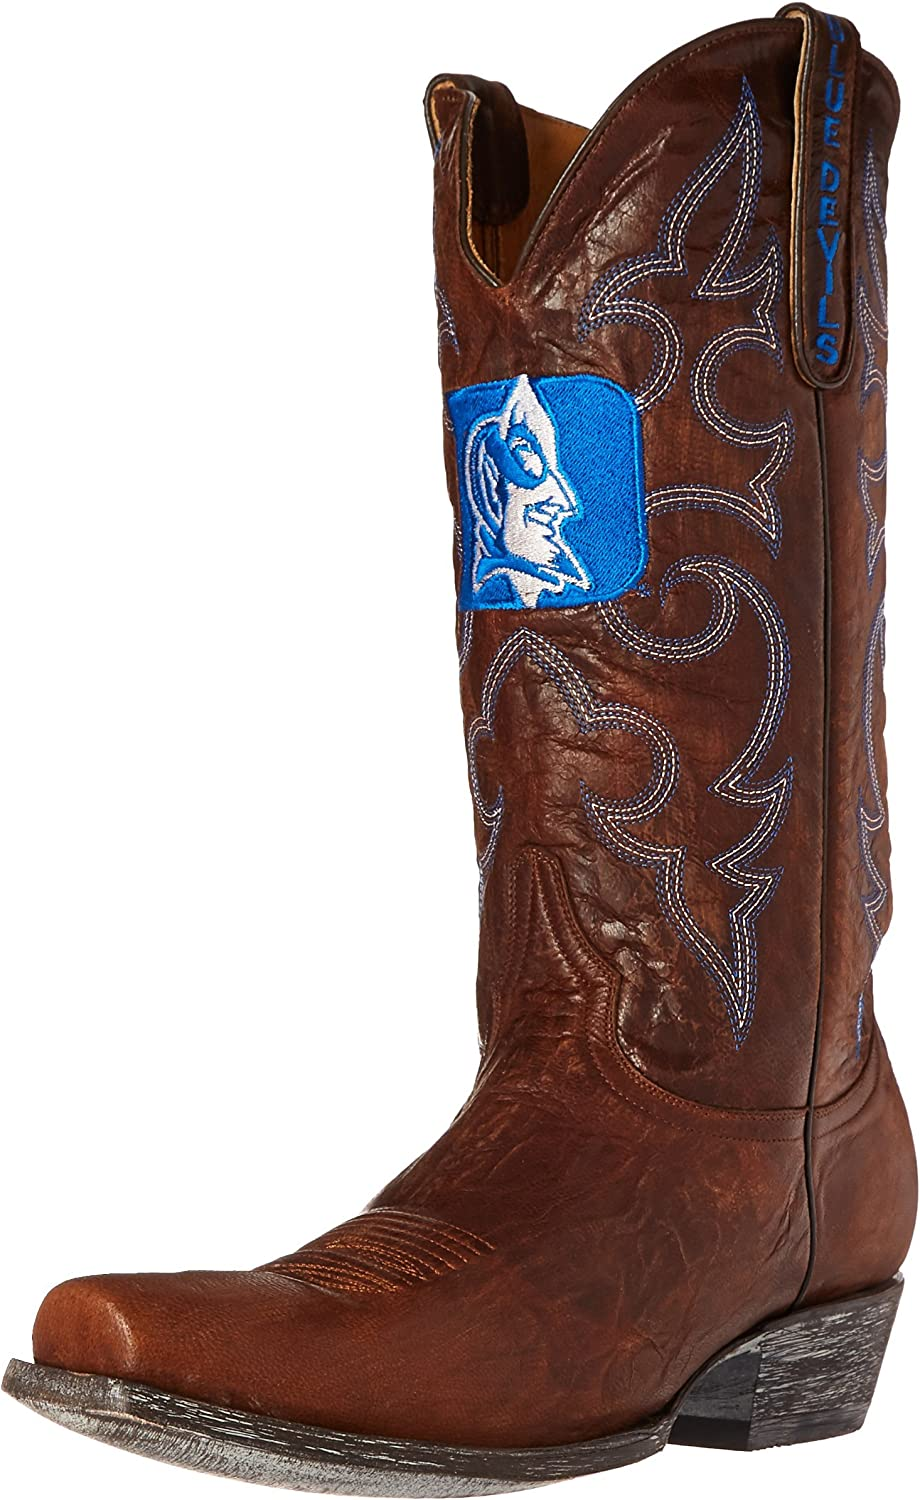 NCAA Duke bluee Devils Men's Board Room Style Boots